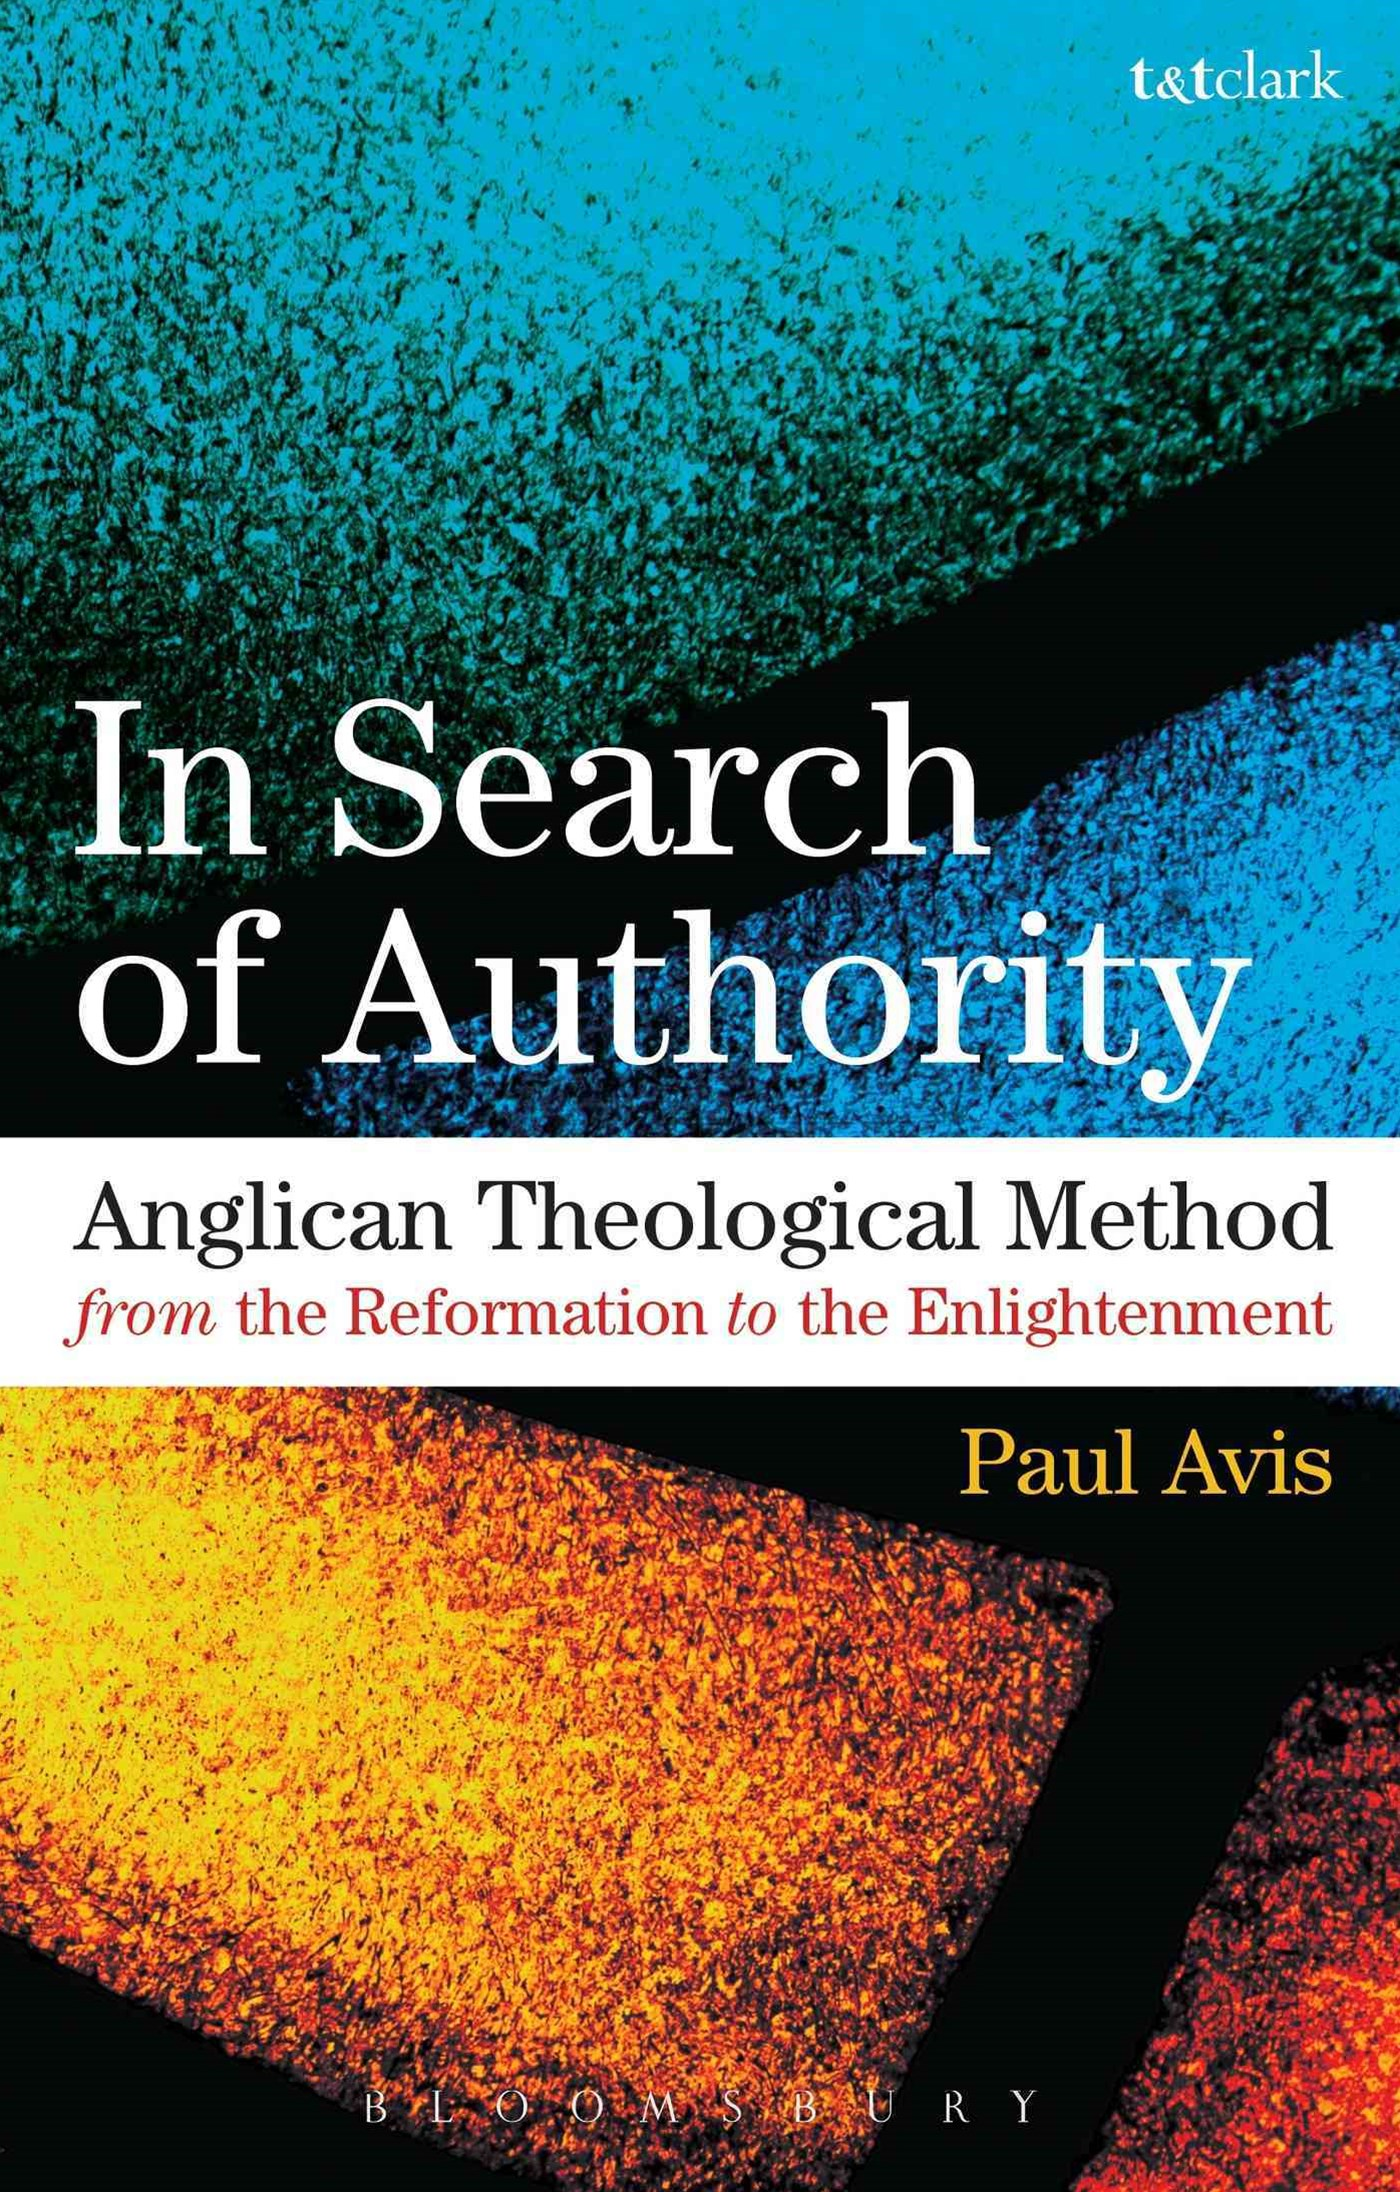 In Search of Authority